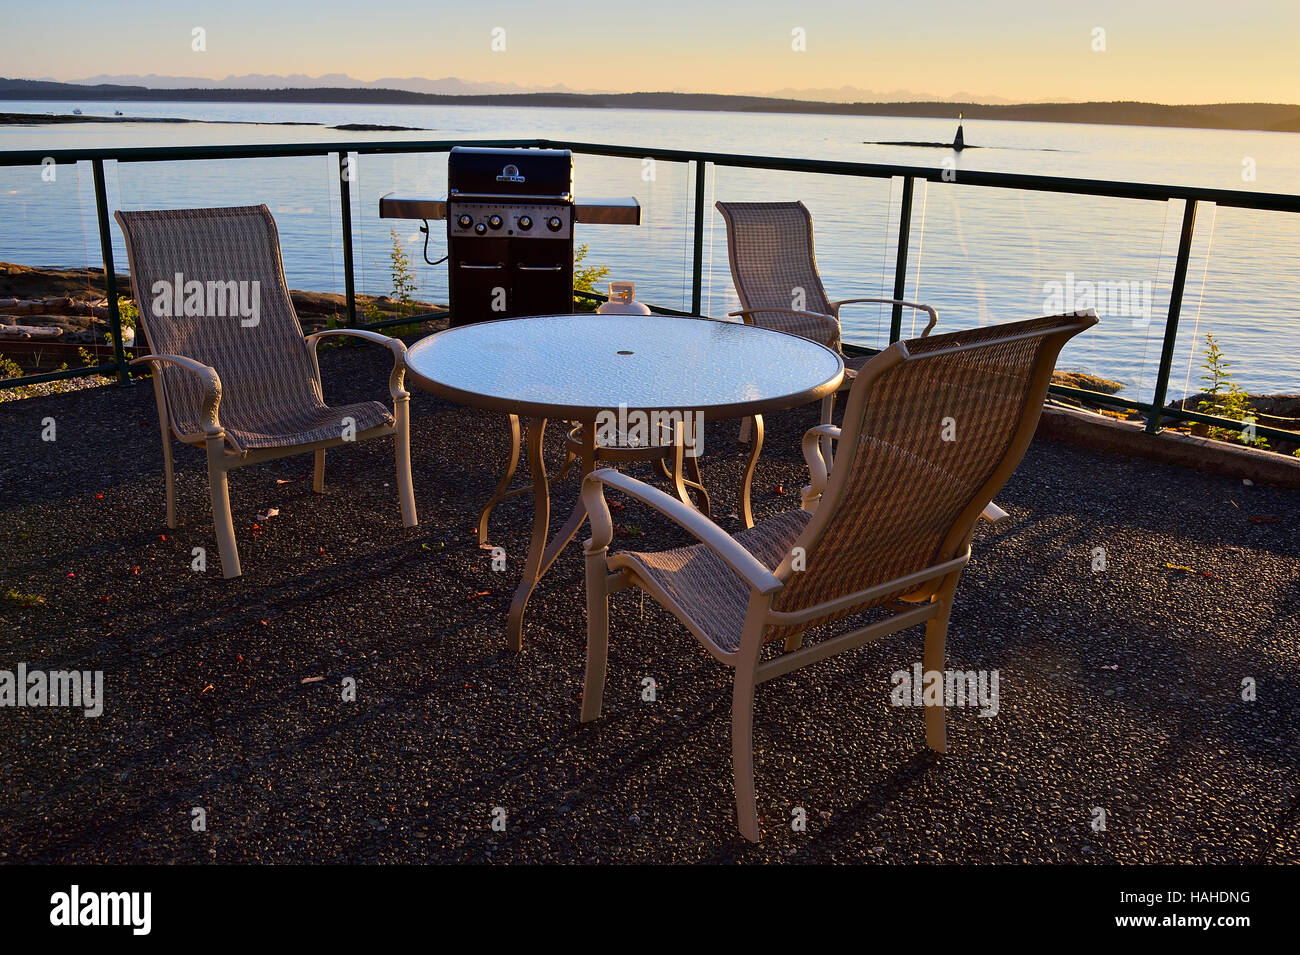 A table and chairs waiting for people to sit and relax - Stock Image